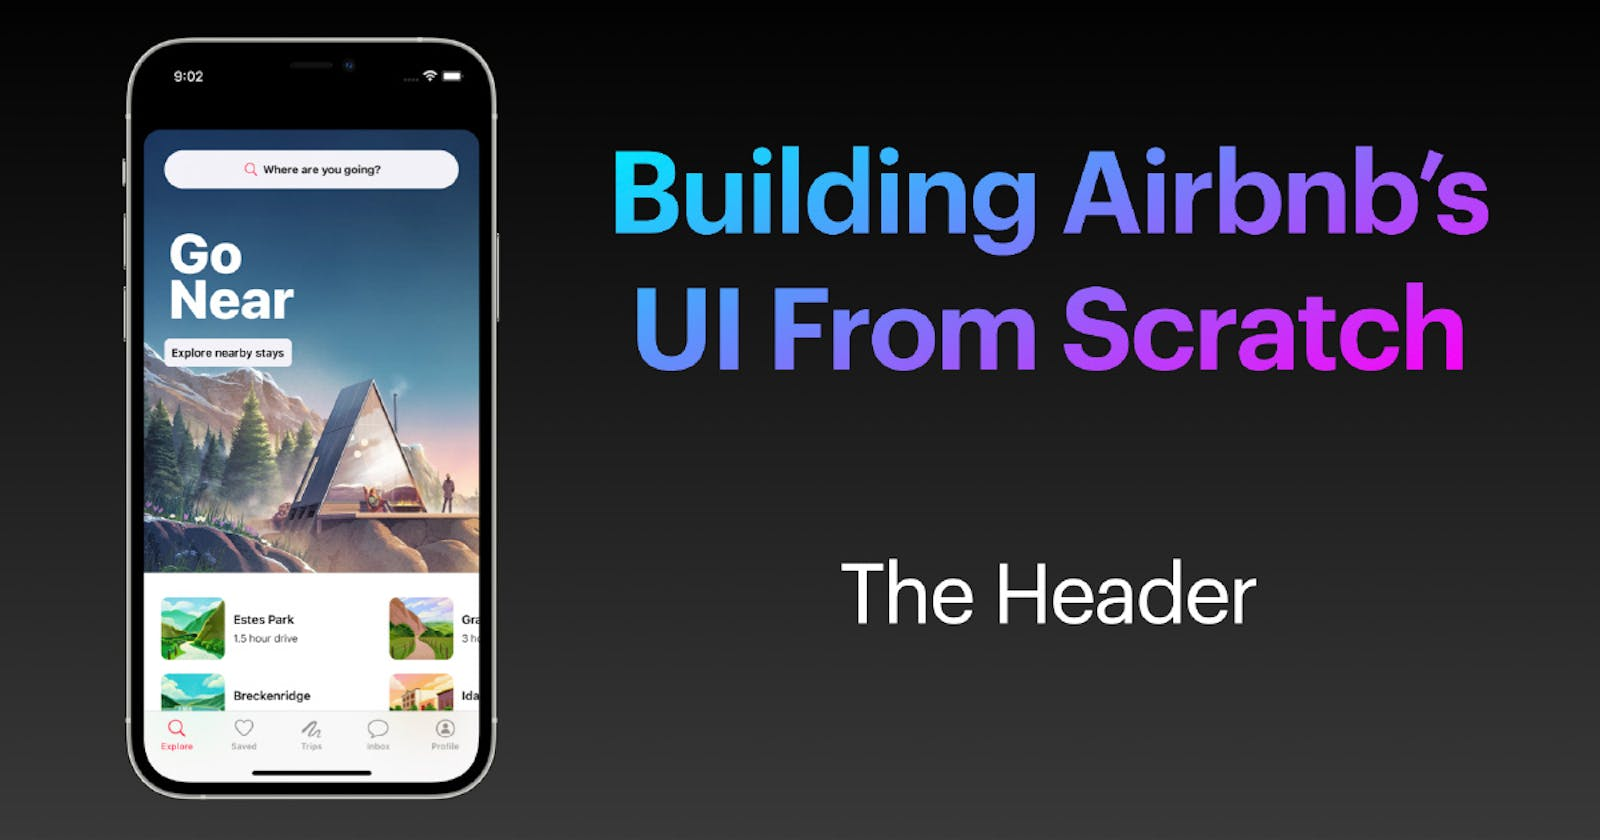 Building Airbnb's UI From Scratch - Part 6